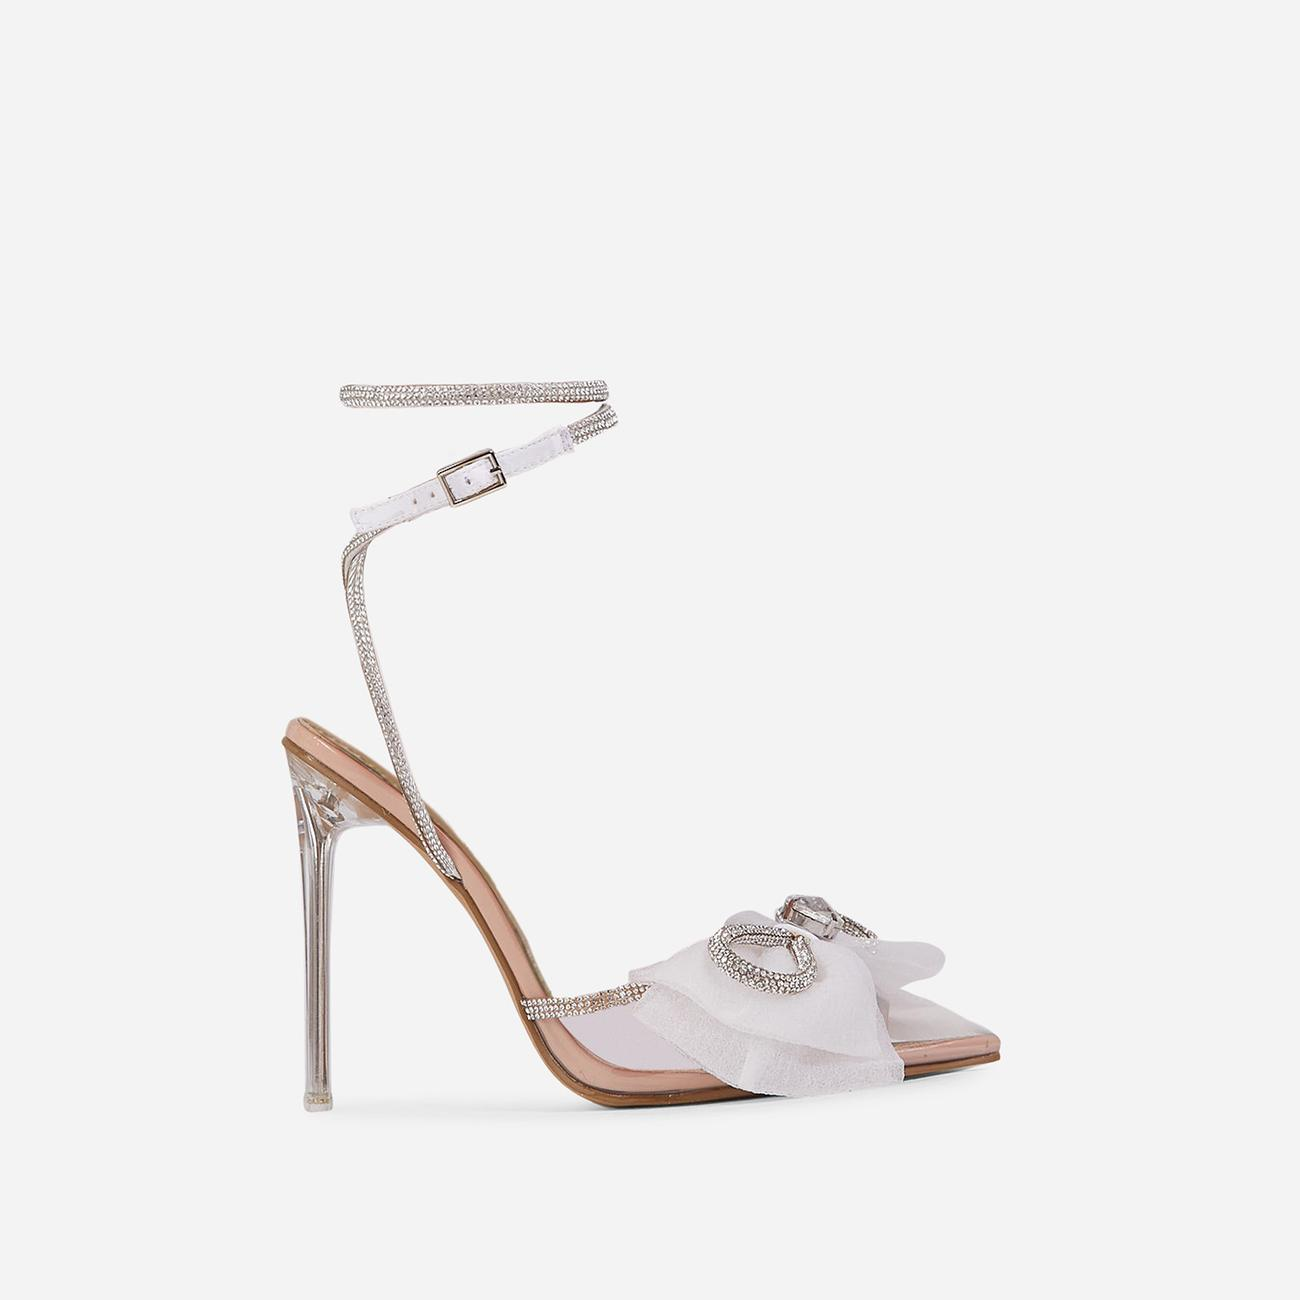 Chriselle Bow Detail Diamante Lace Up Clear Perspex Heel In Nude Patent Image 1